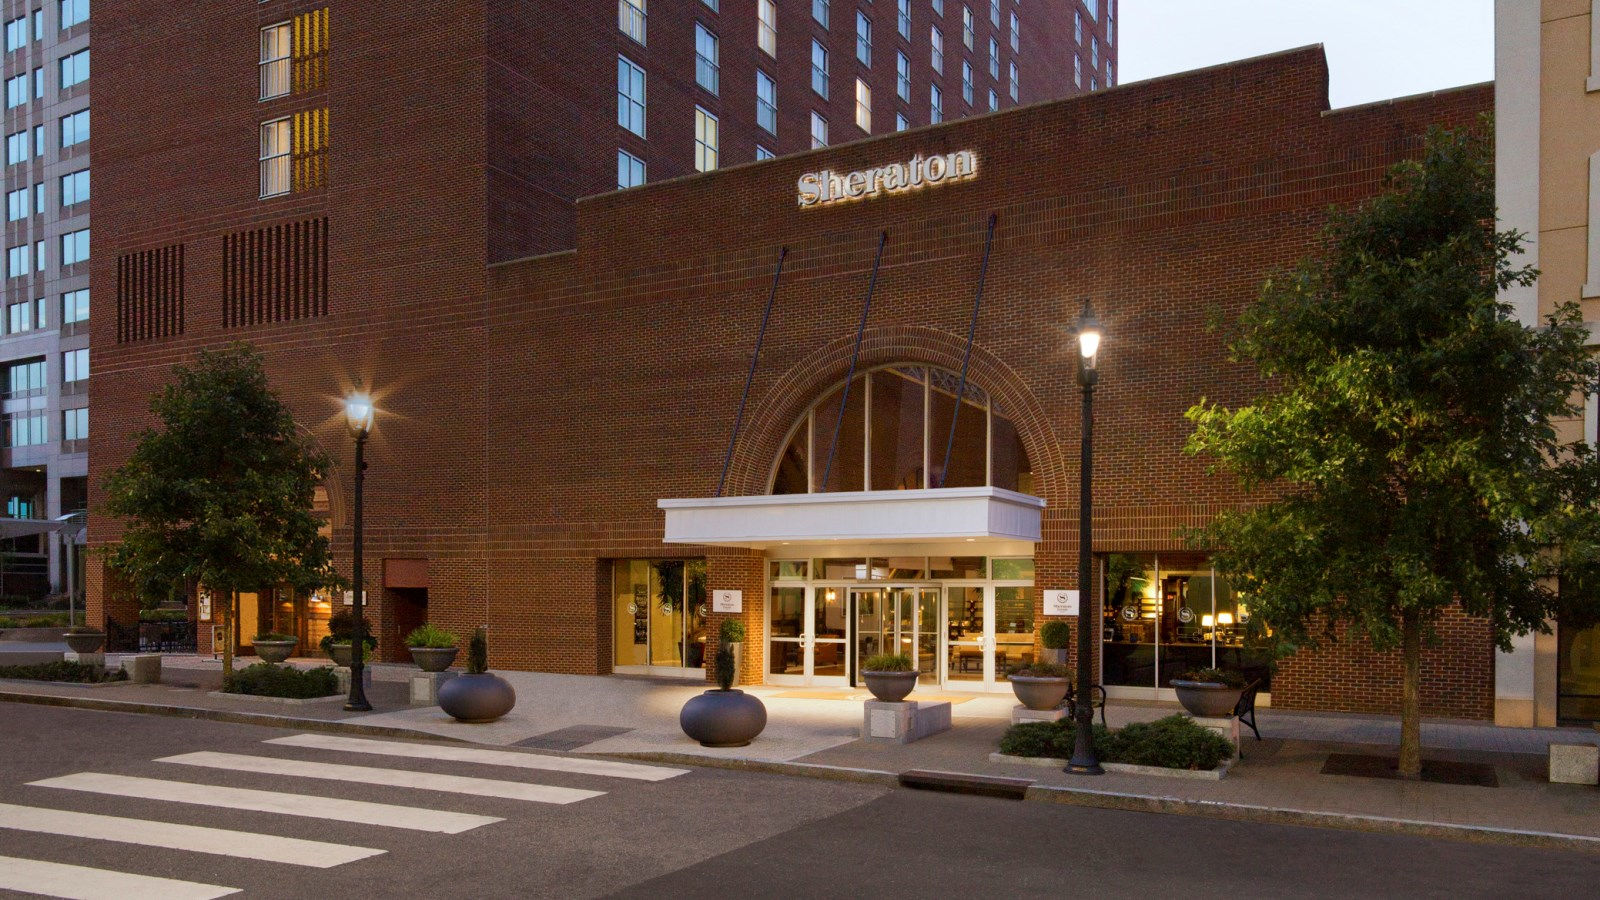 Sheraton Raleigh Hotel - Raleigh Events